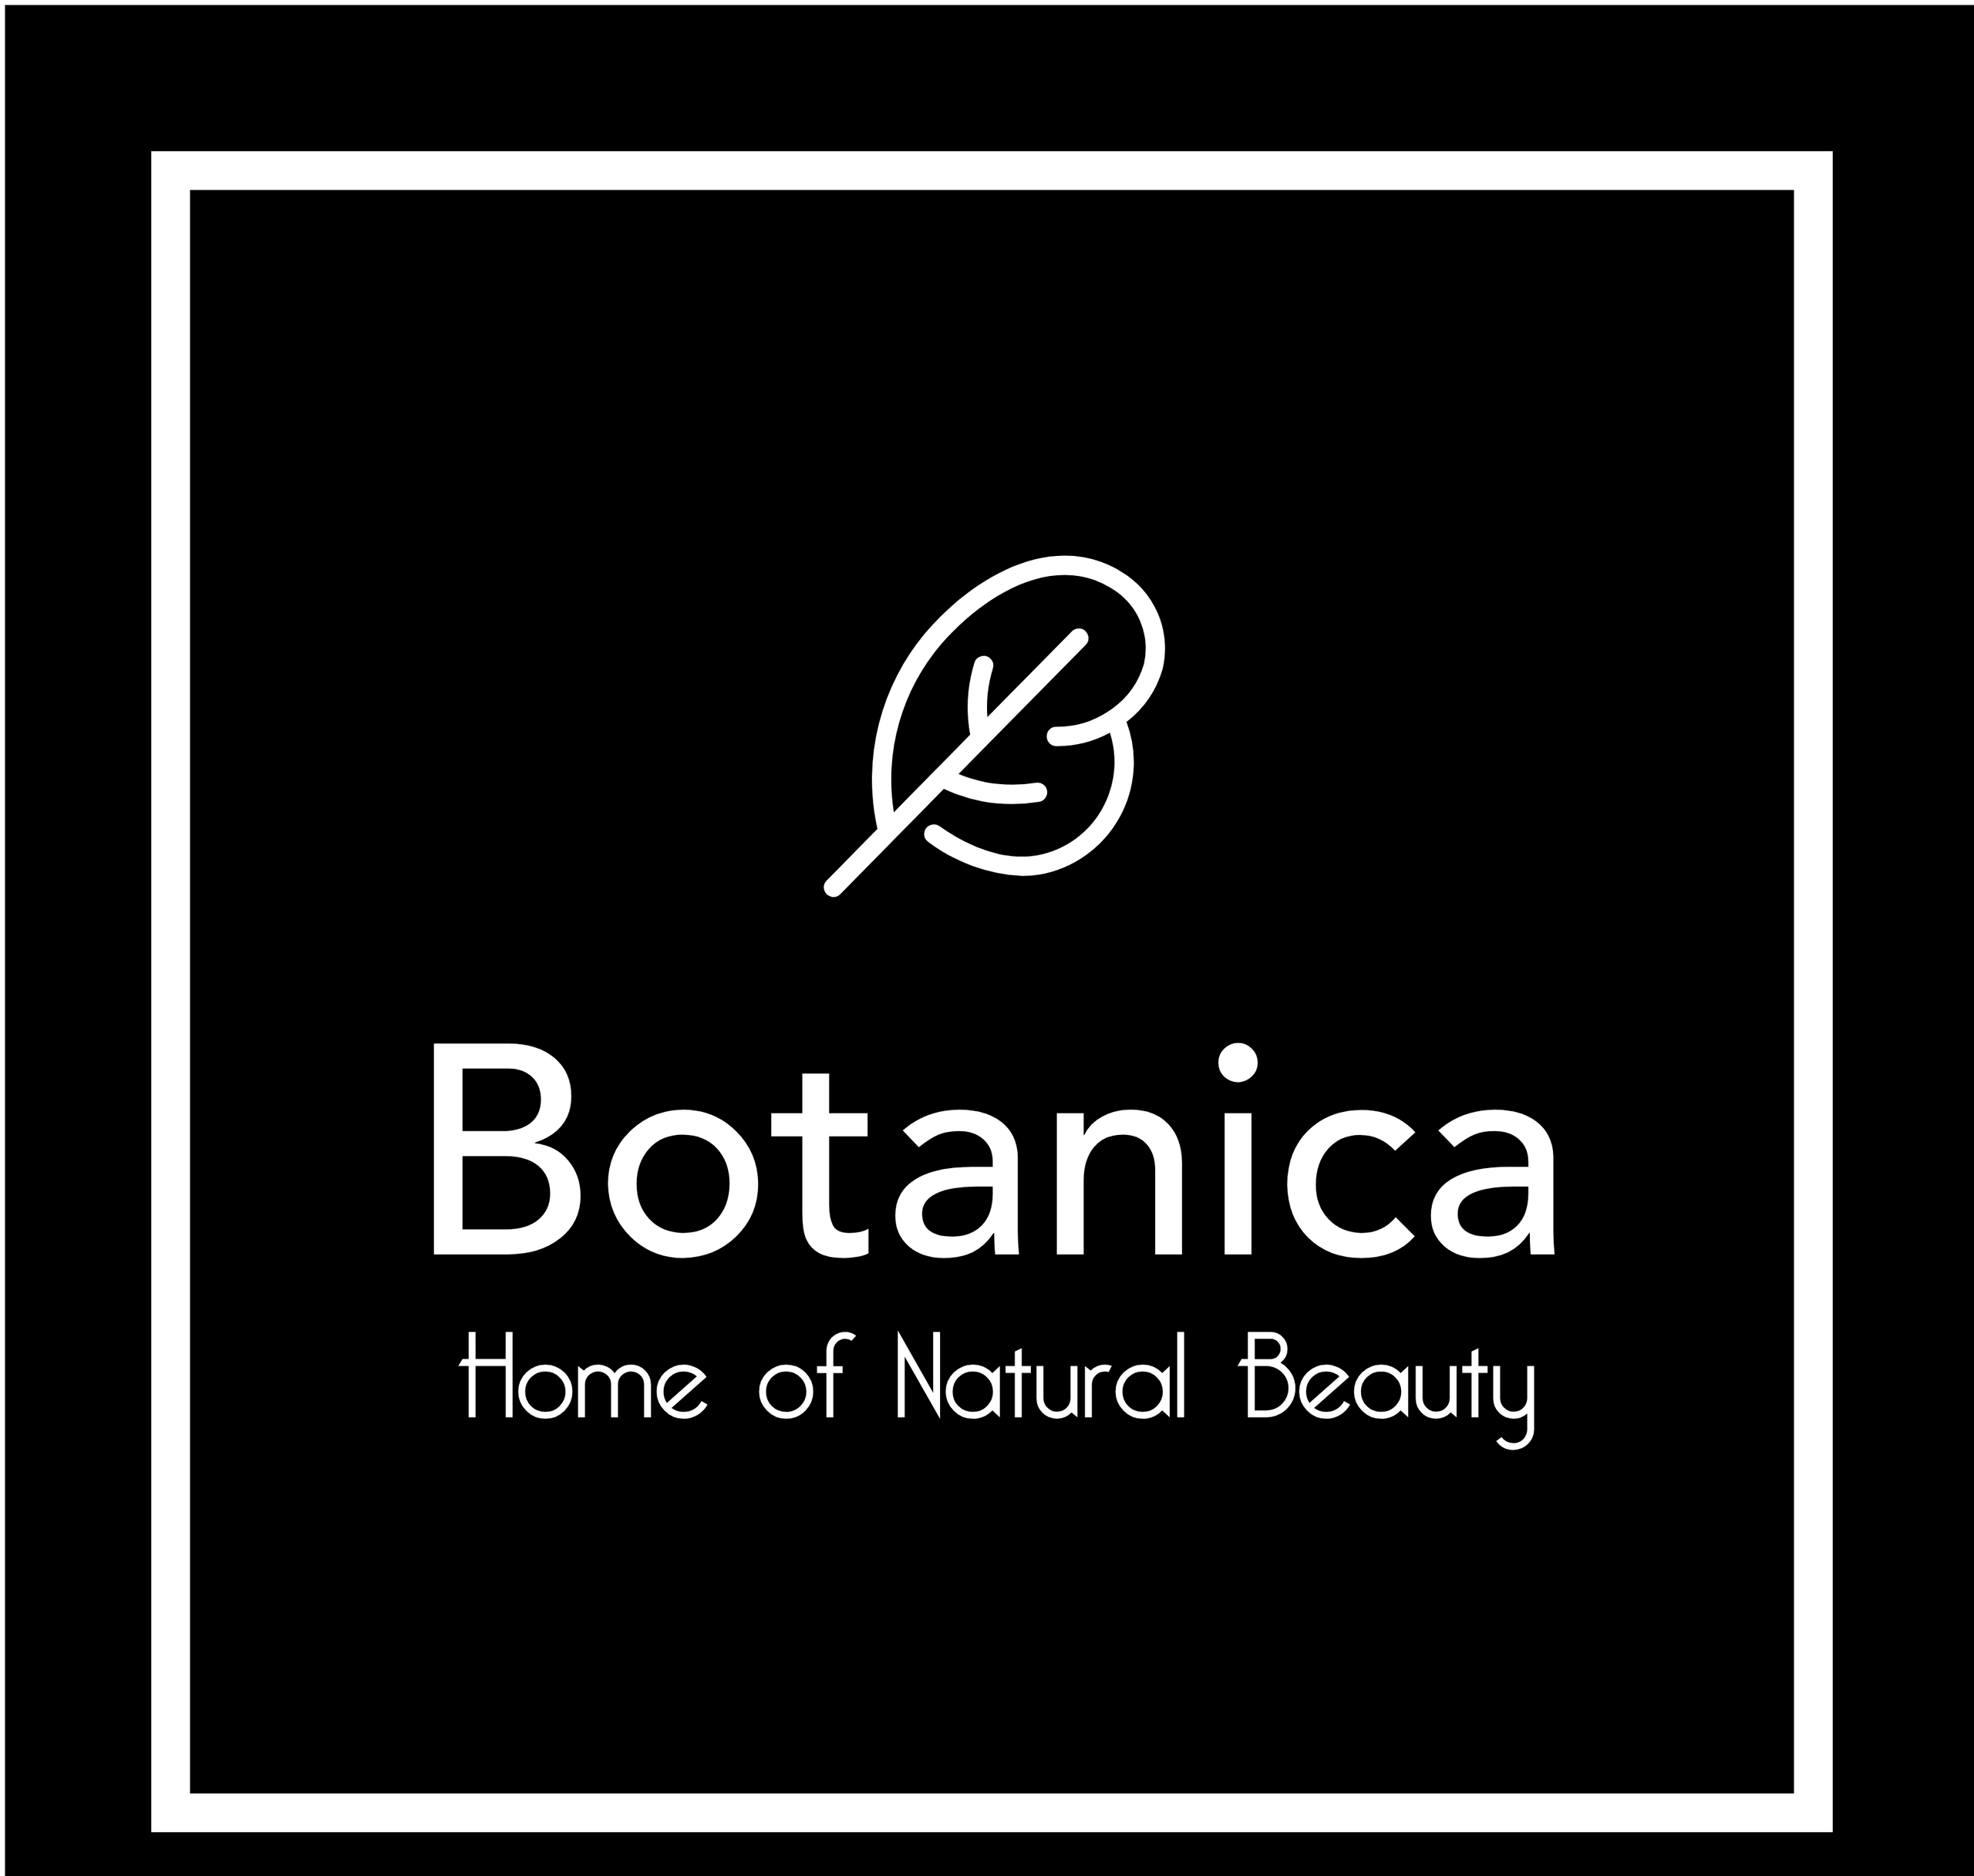 Botanica Home of natural beauty logo image